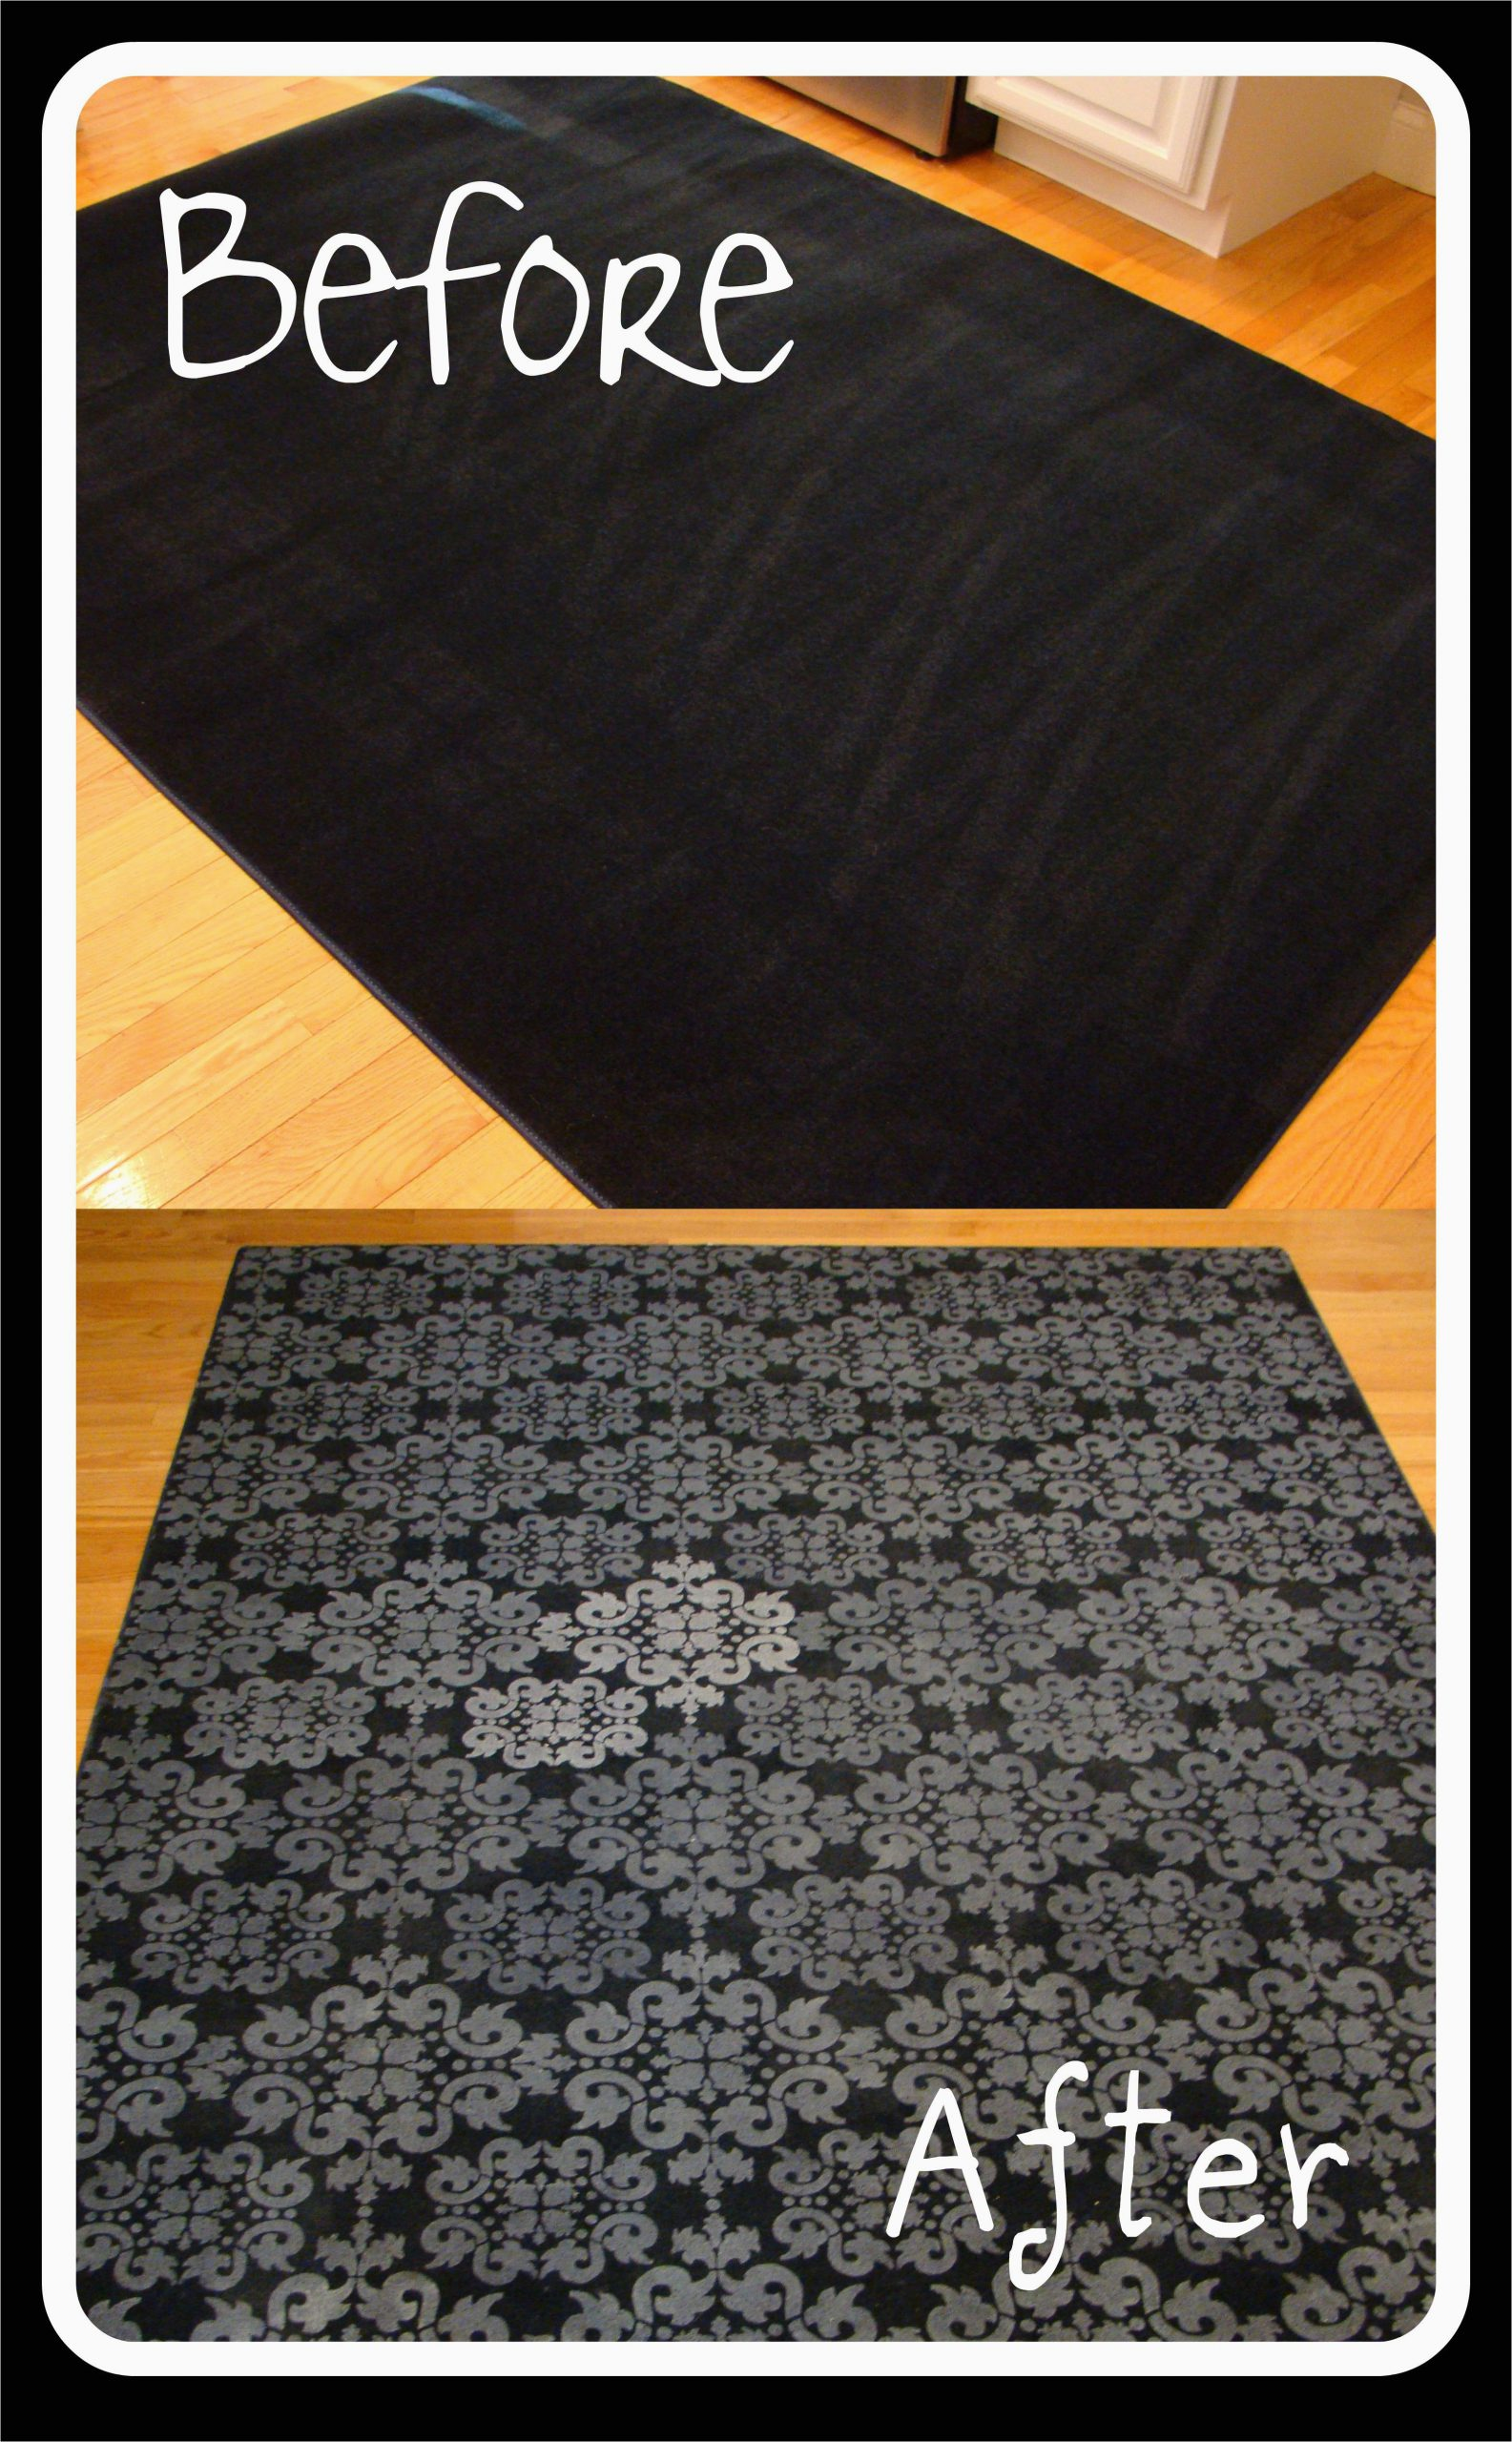 Area Rugs at Hobby Lobby Easy Diy area Rug for Paying $ 50 100 for A Rug Buy A